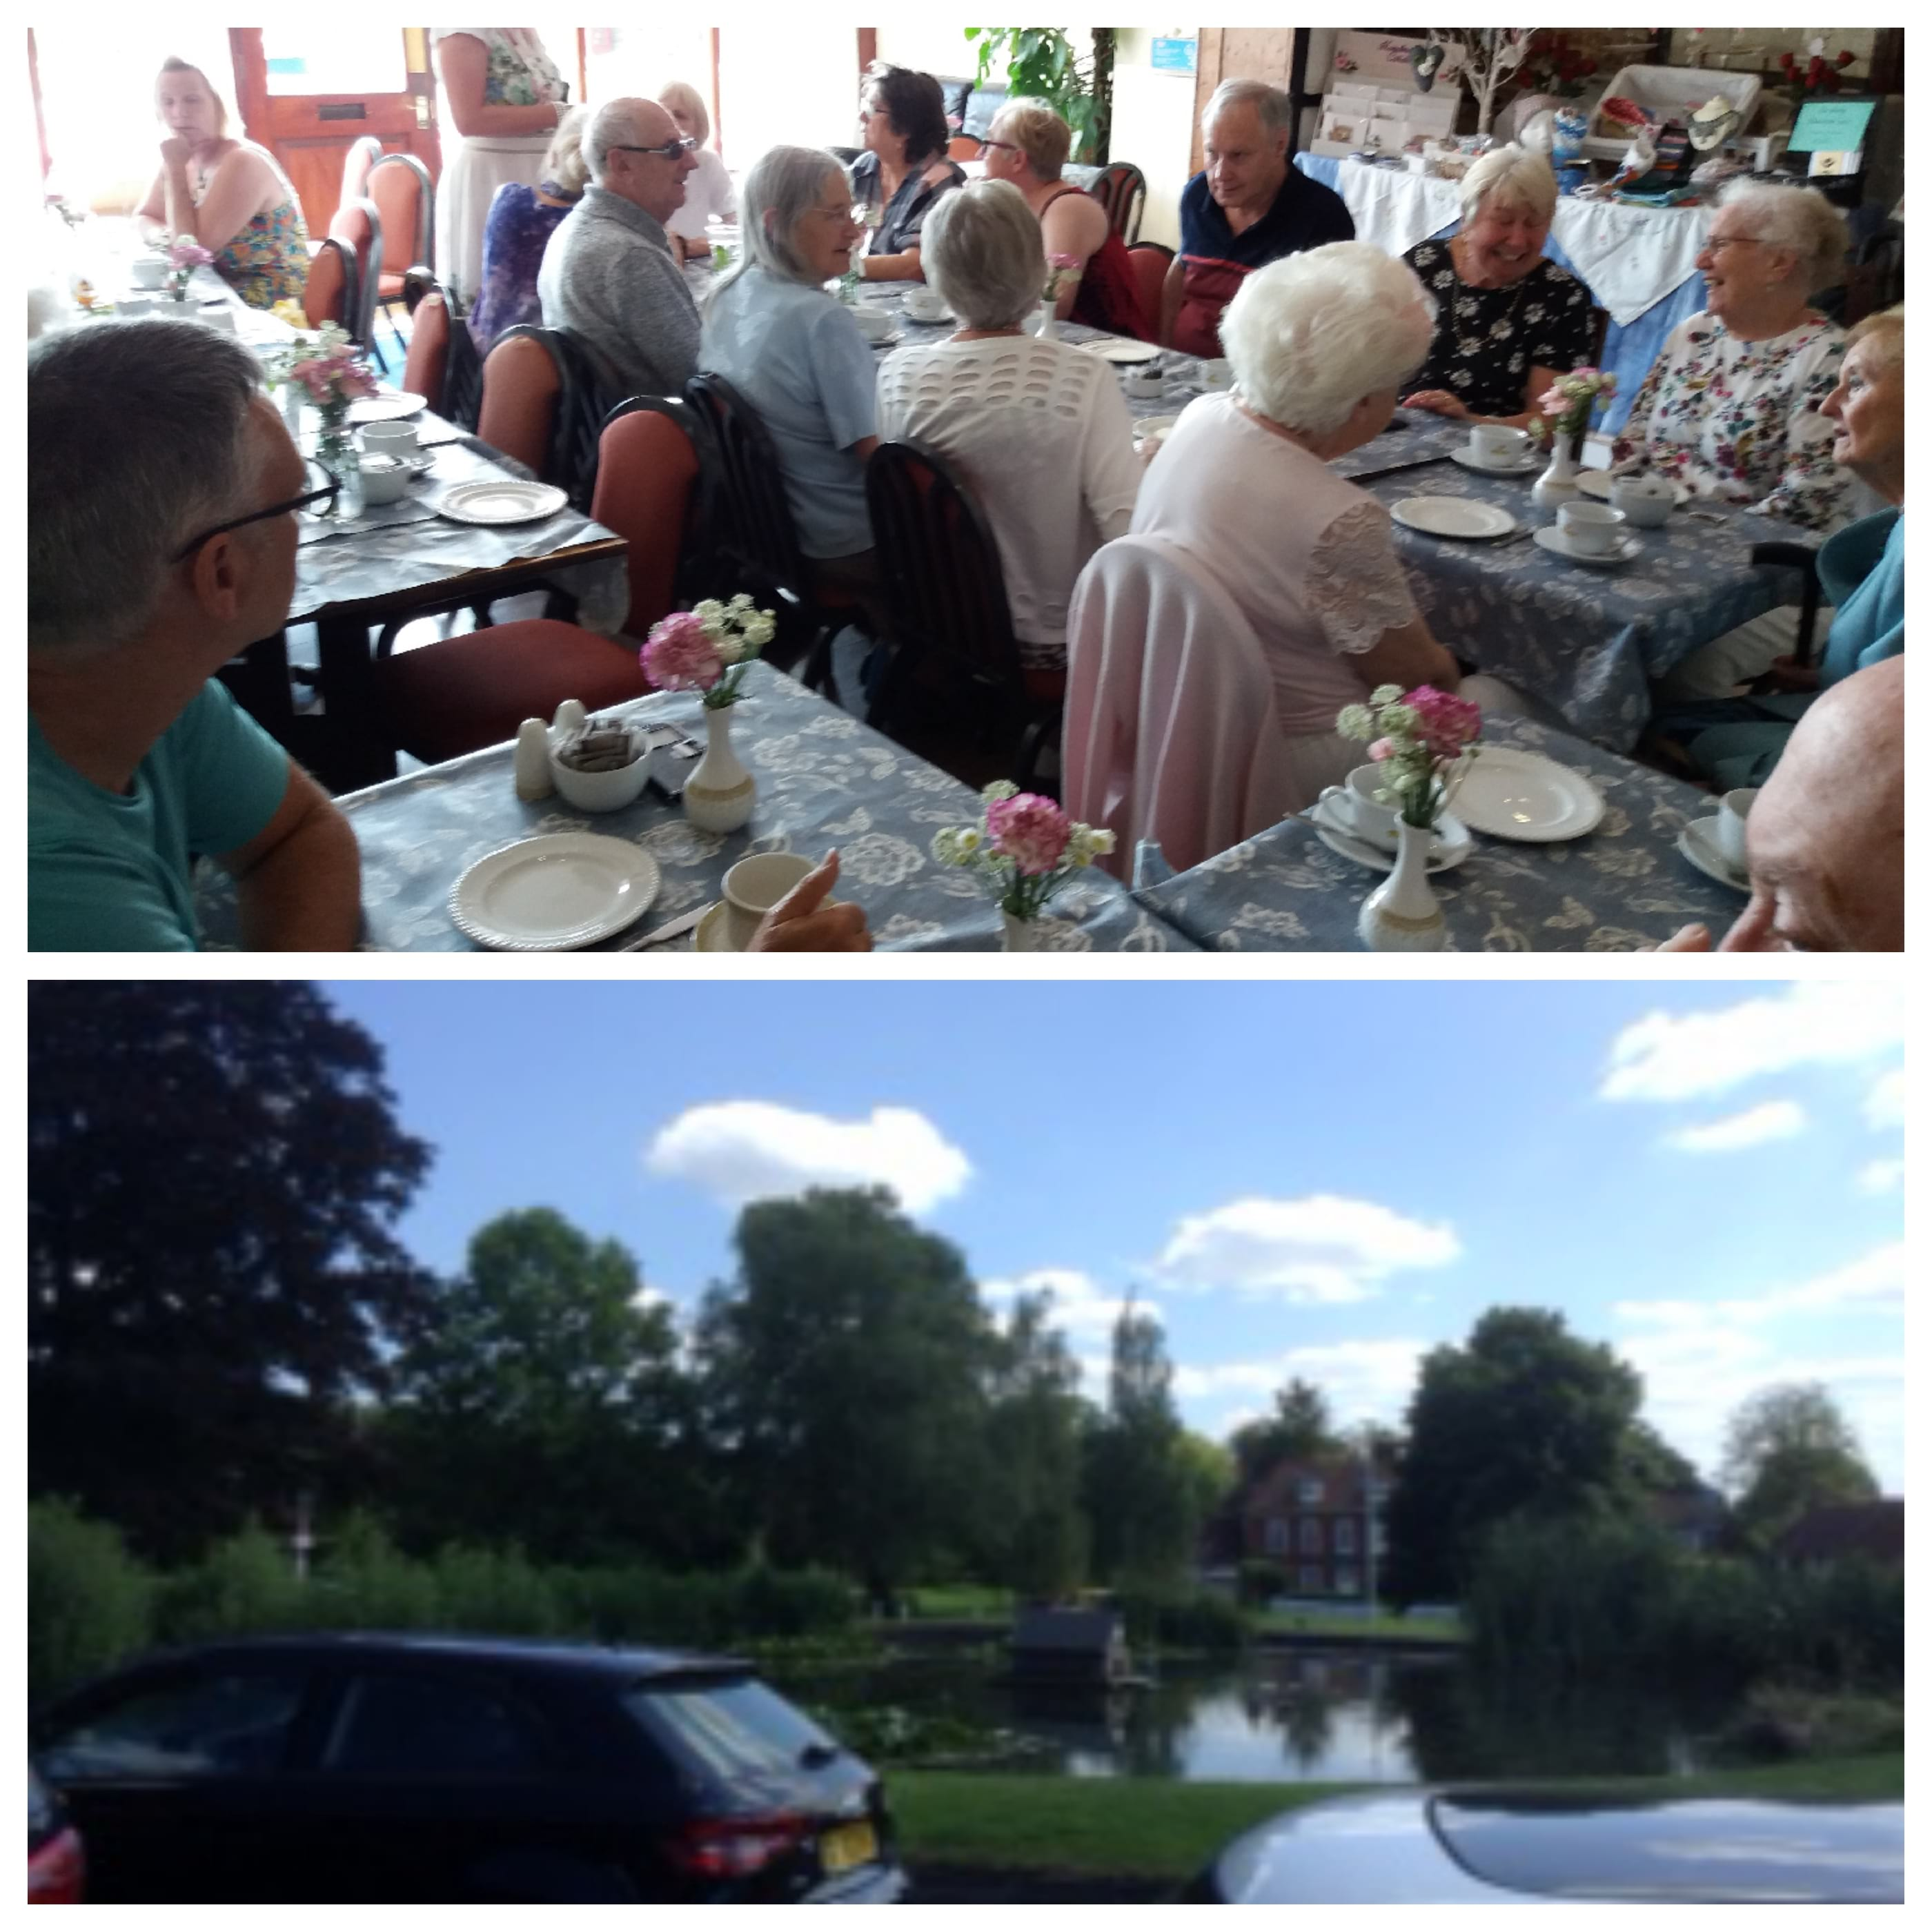 Visit to Otford Tea Rooms for cream tea